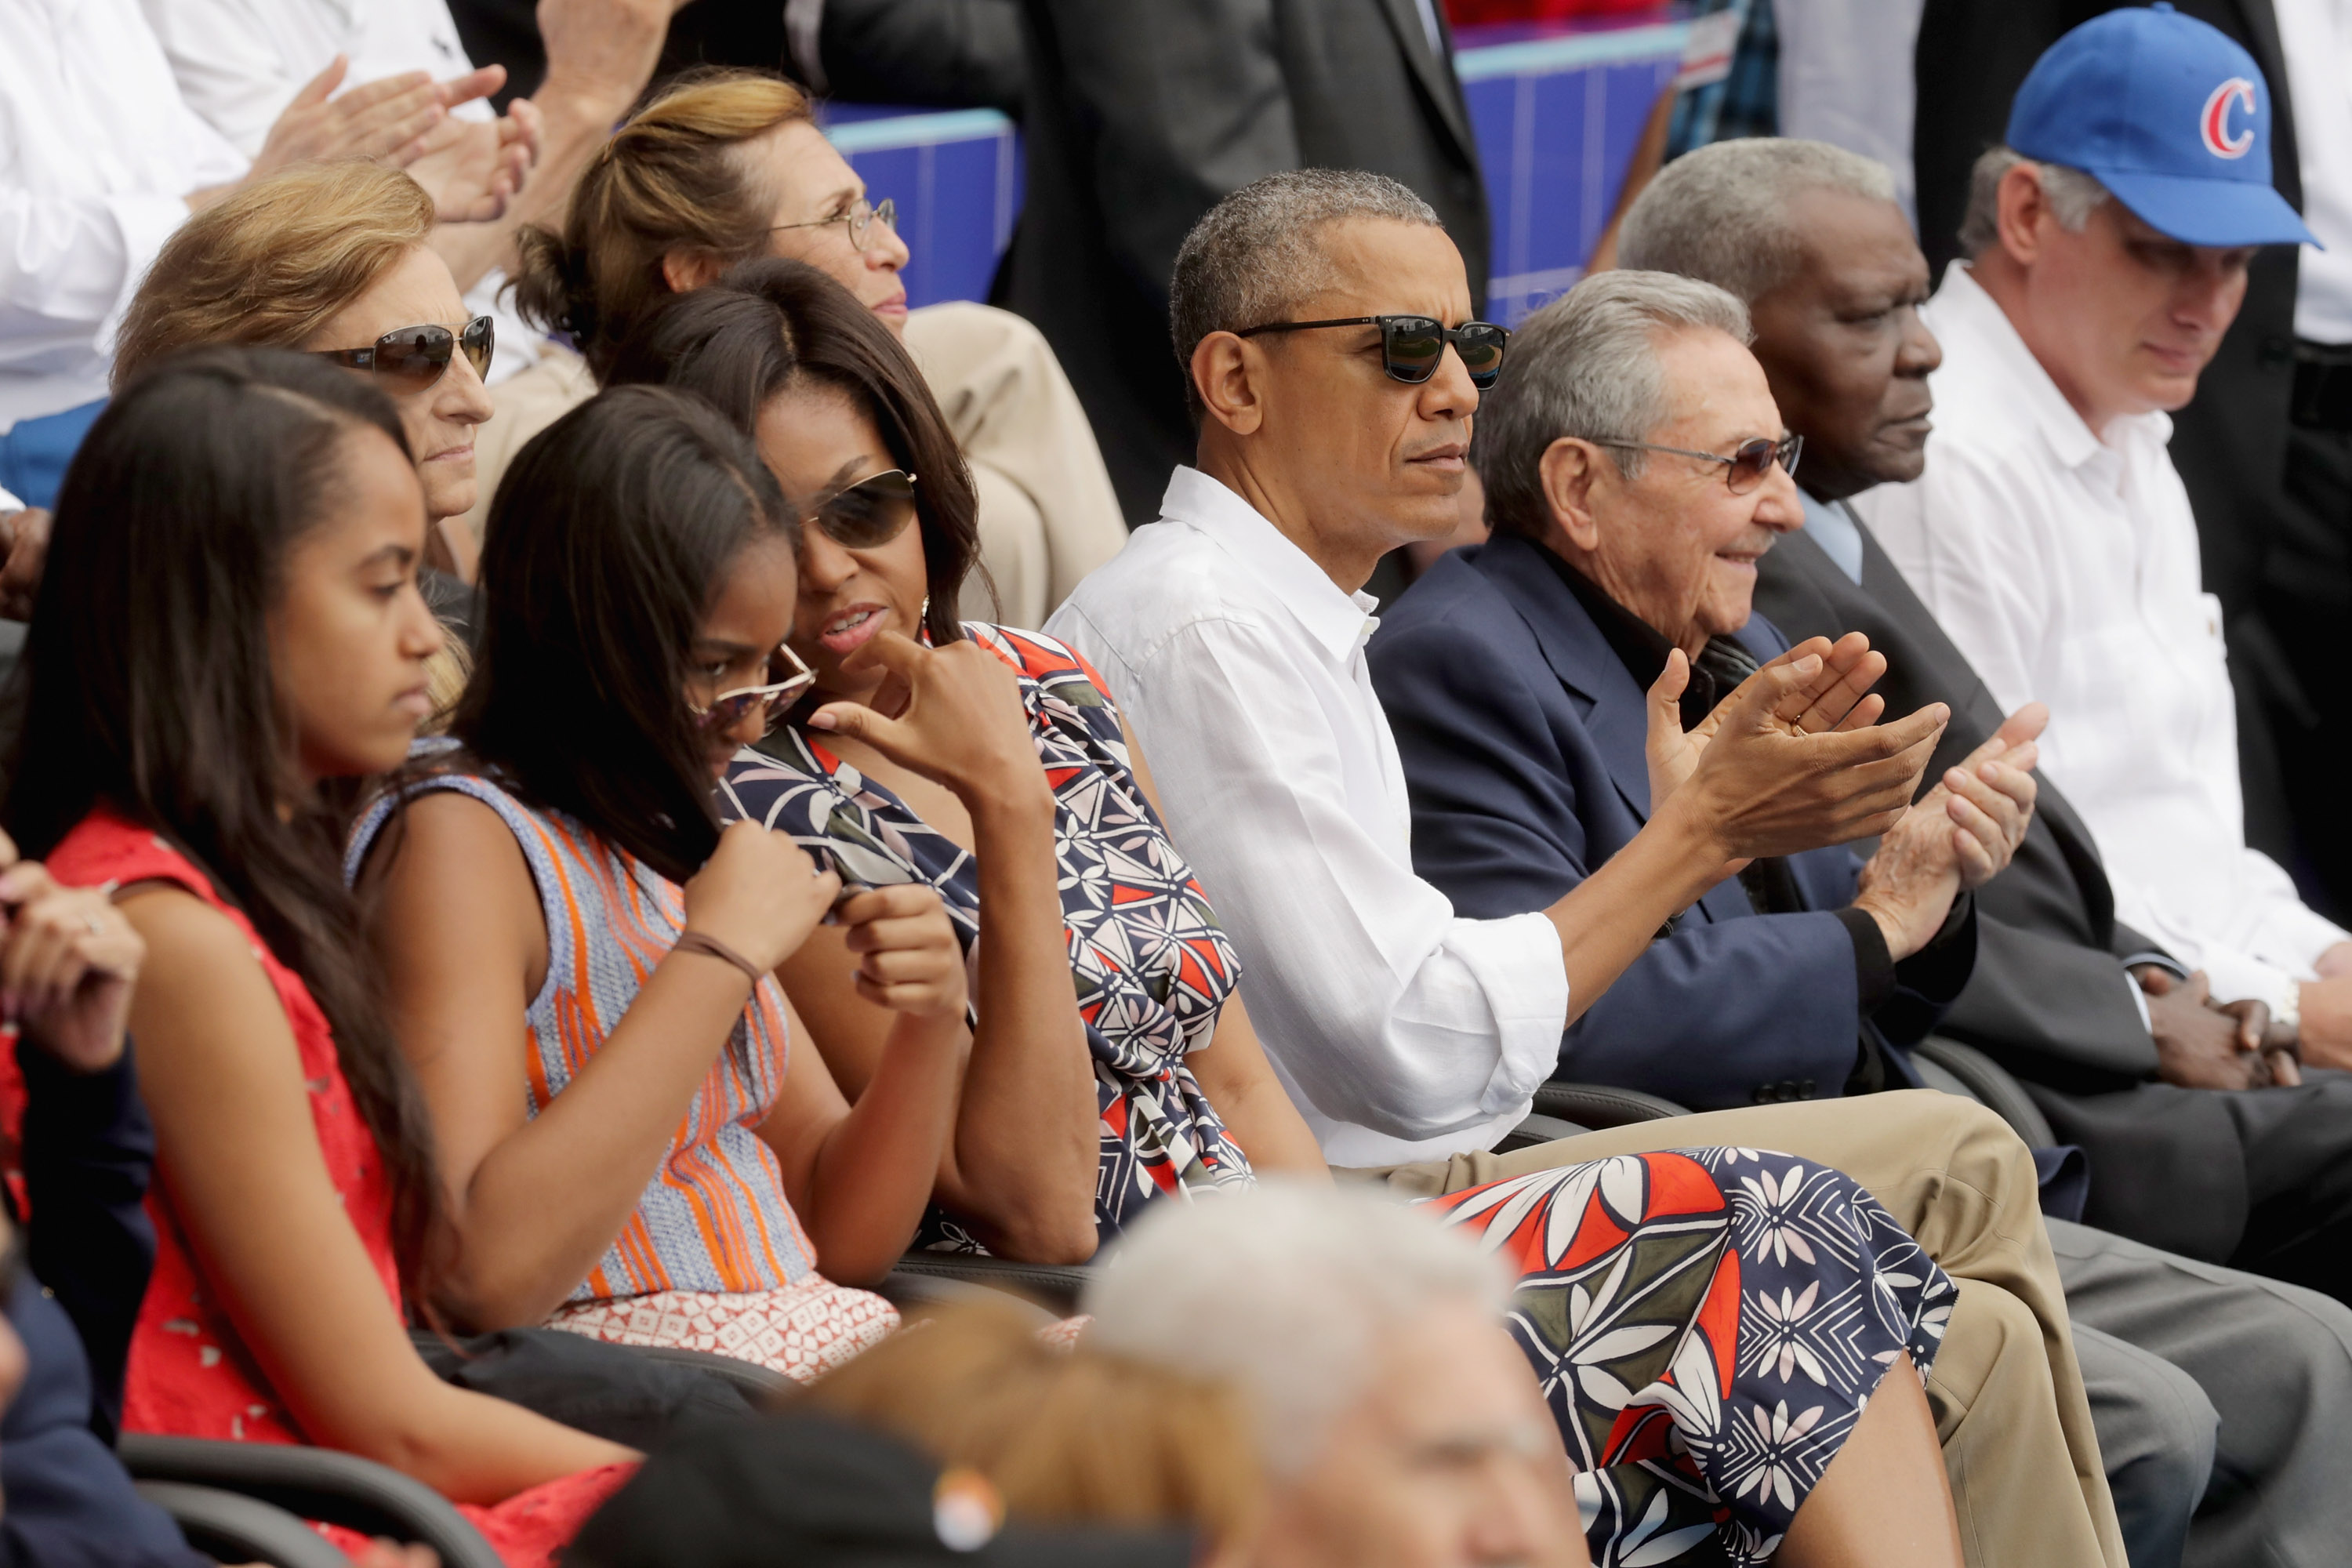 President Obama Will Host His Own Music Festival At The White House GettyImages 516970894